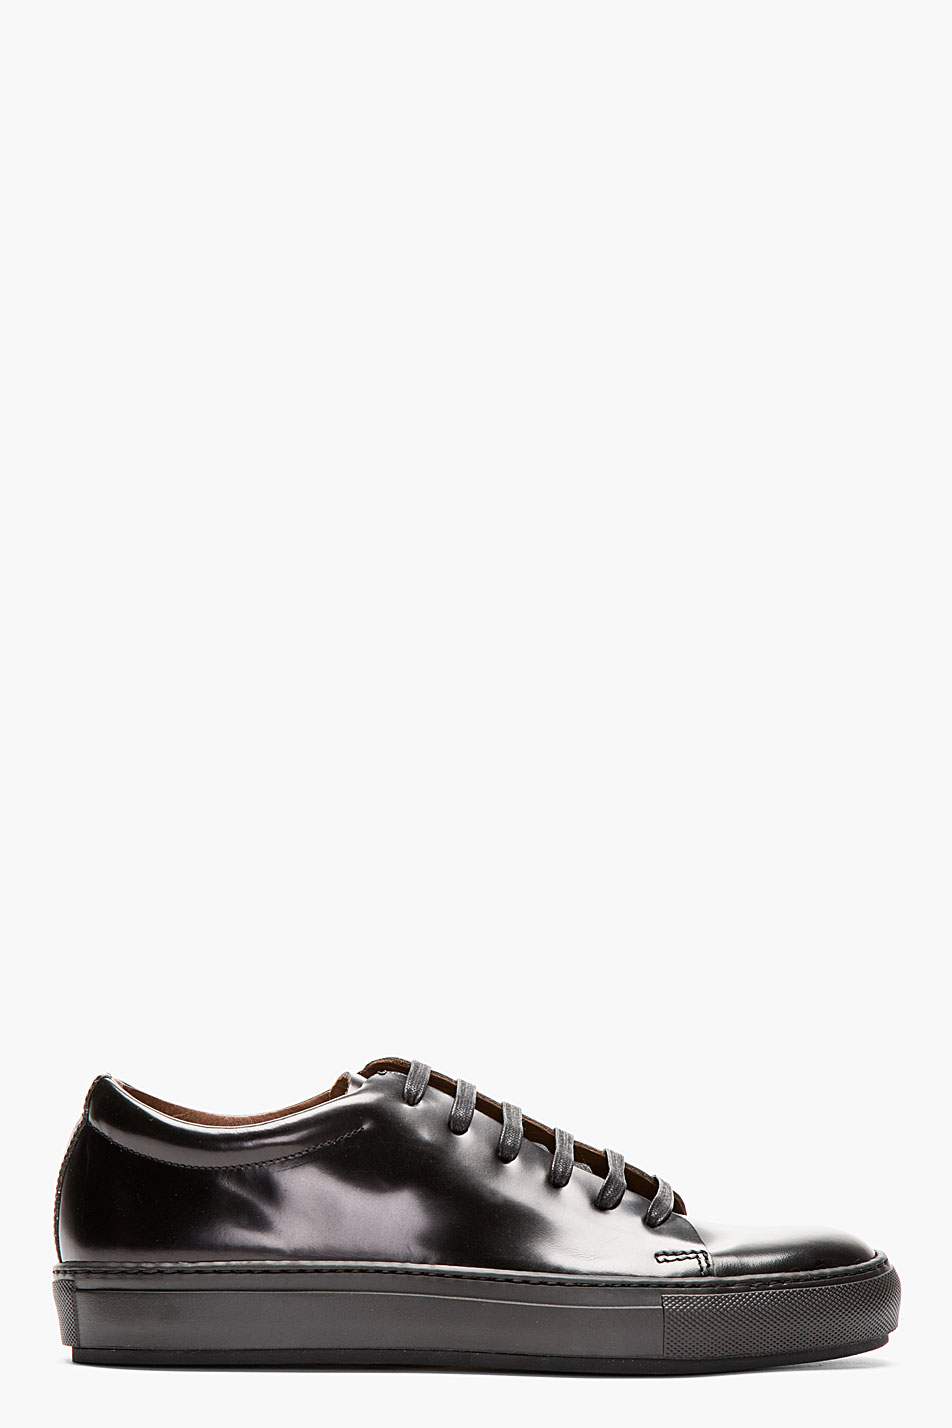 acne studios black polished leather sneakers